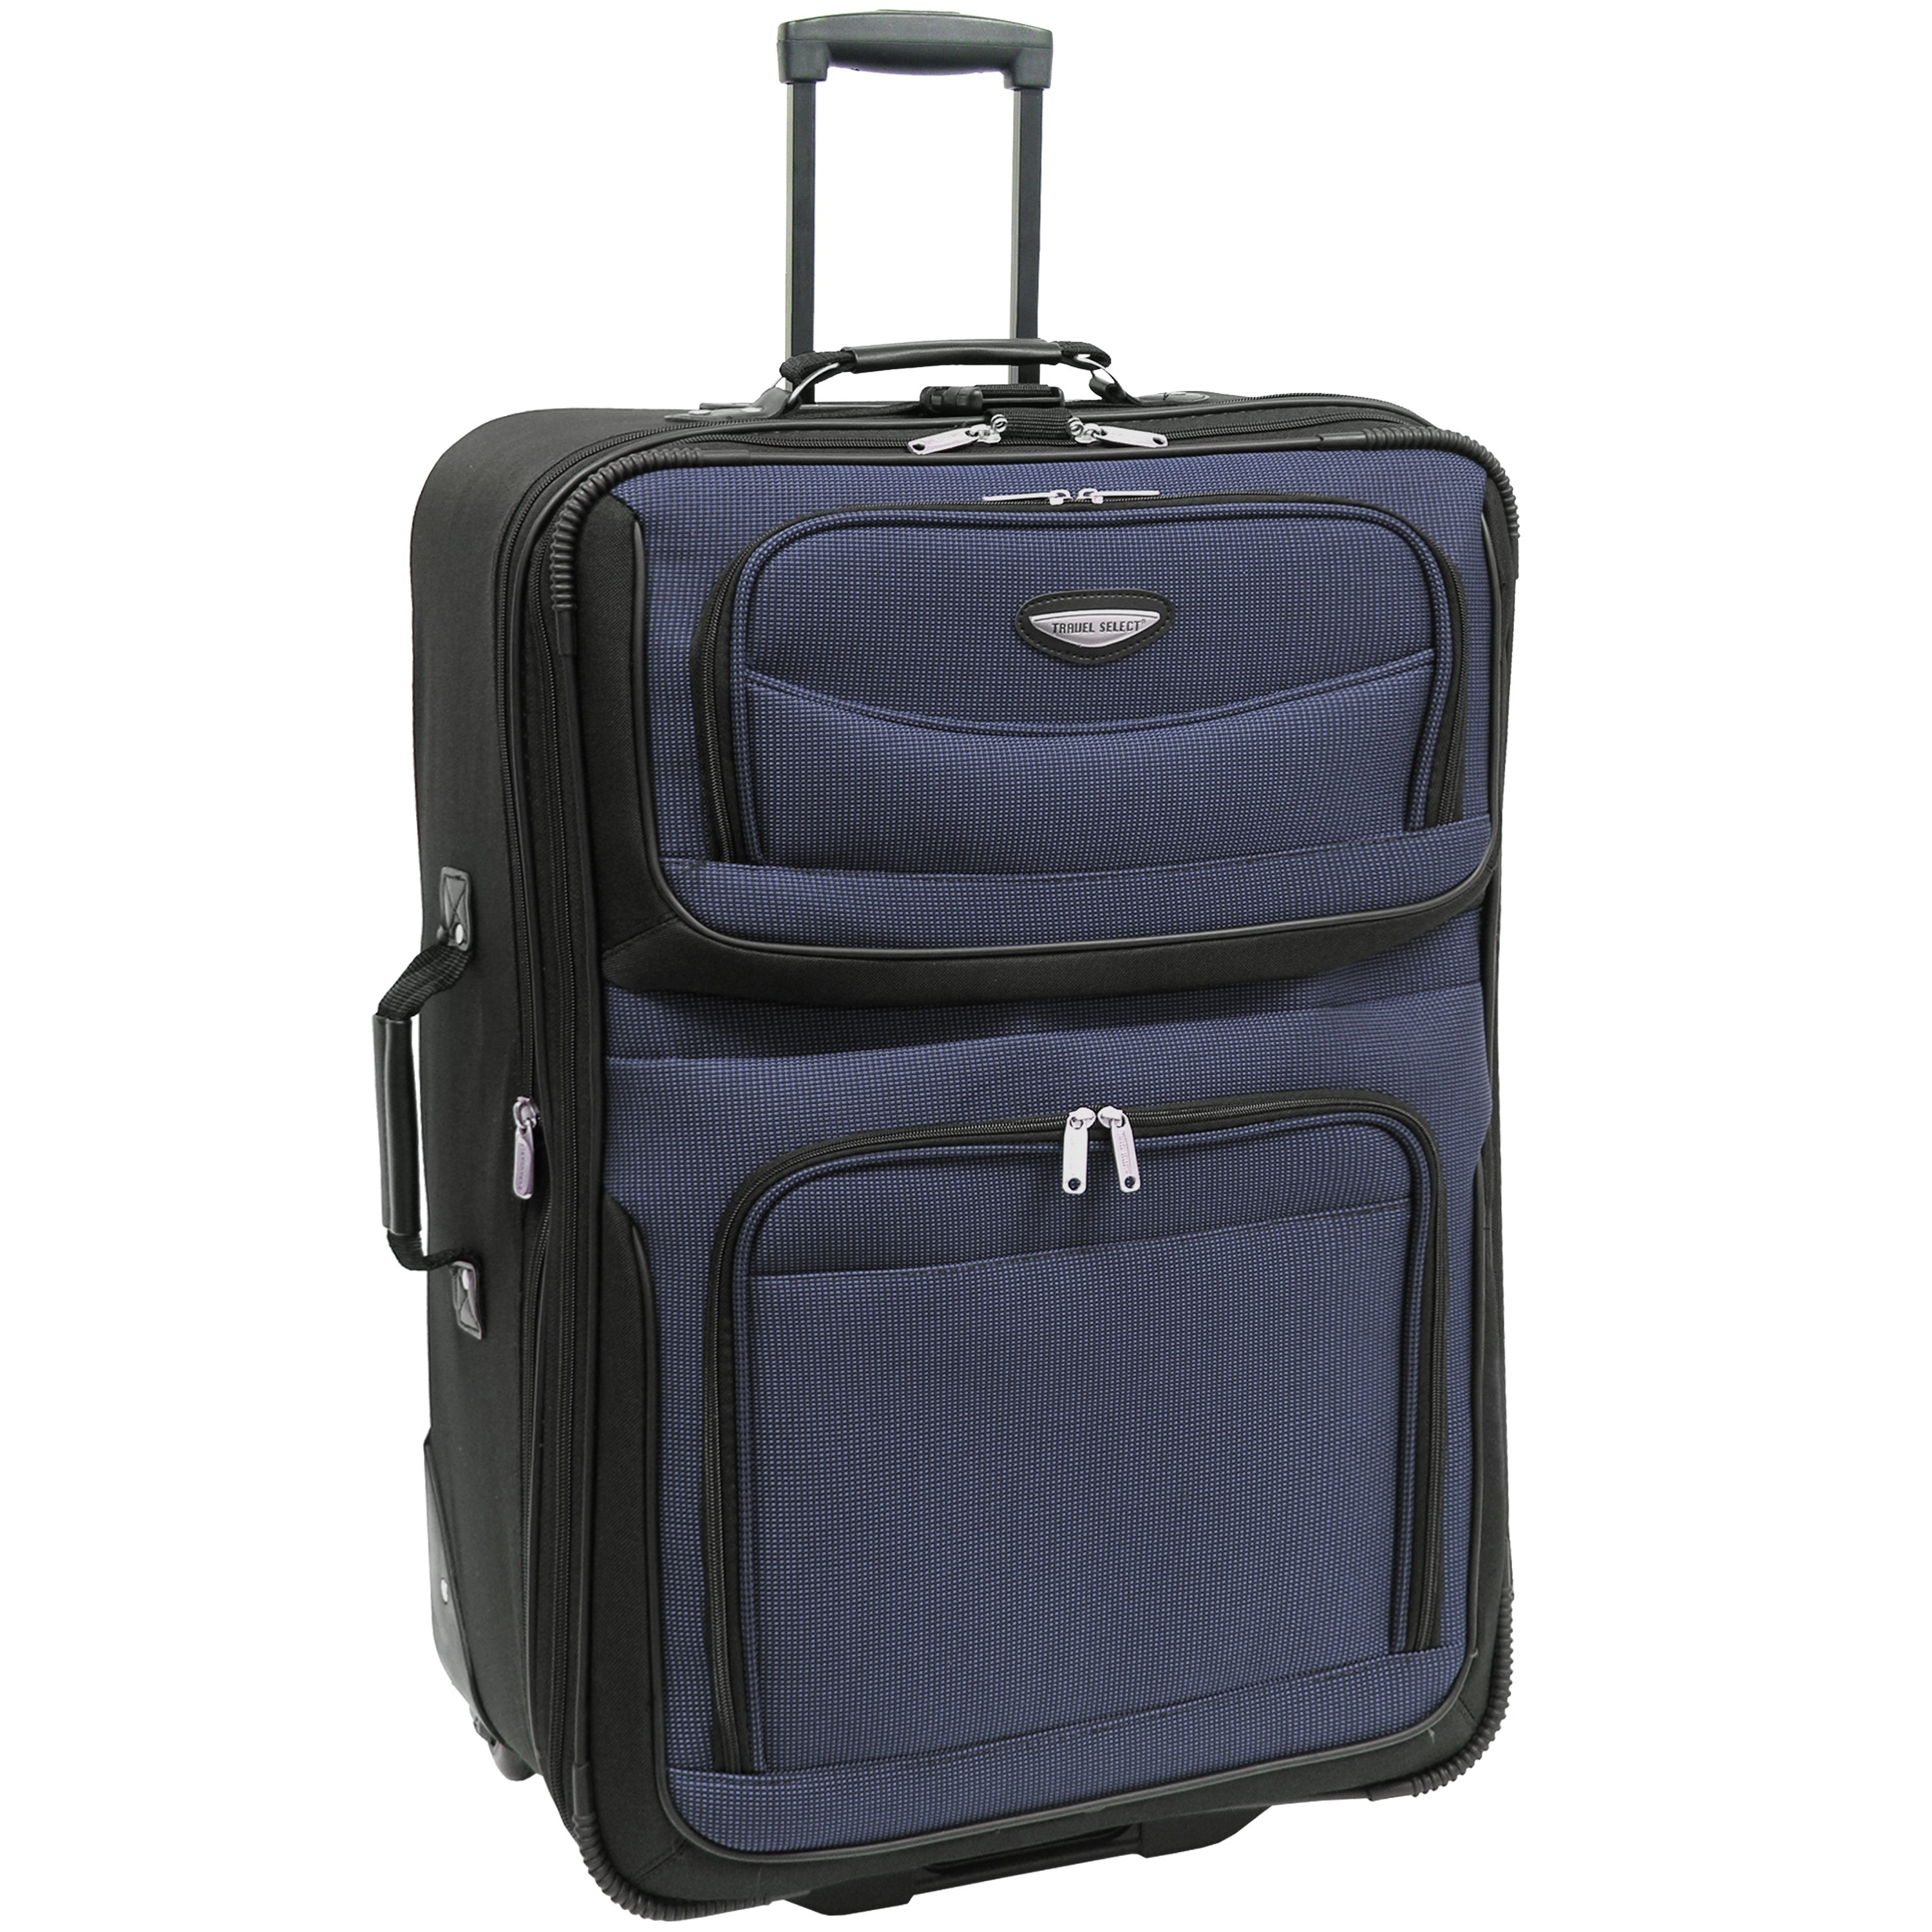 e26e6a61f8 Shop Travel Select by Traveler s Choice Amsterdam 29-Inch Large Expandable  Rolling Upright Suitcase - Free Shipping Today - Overstock - 3019553